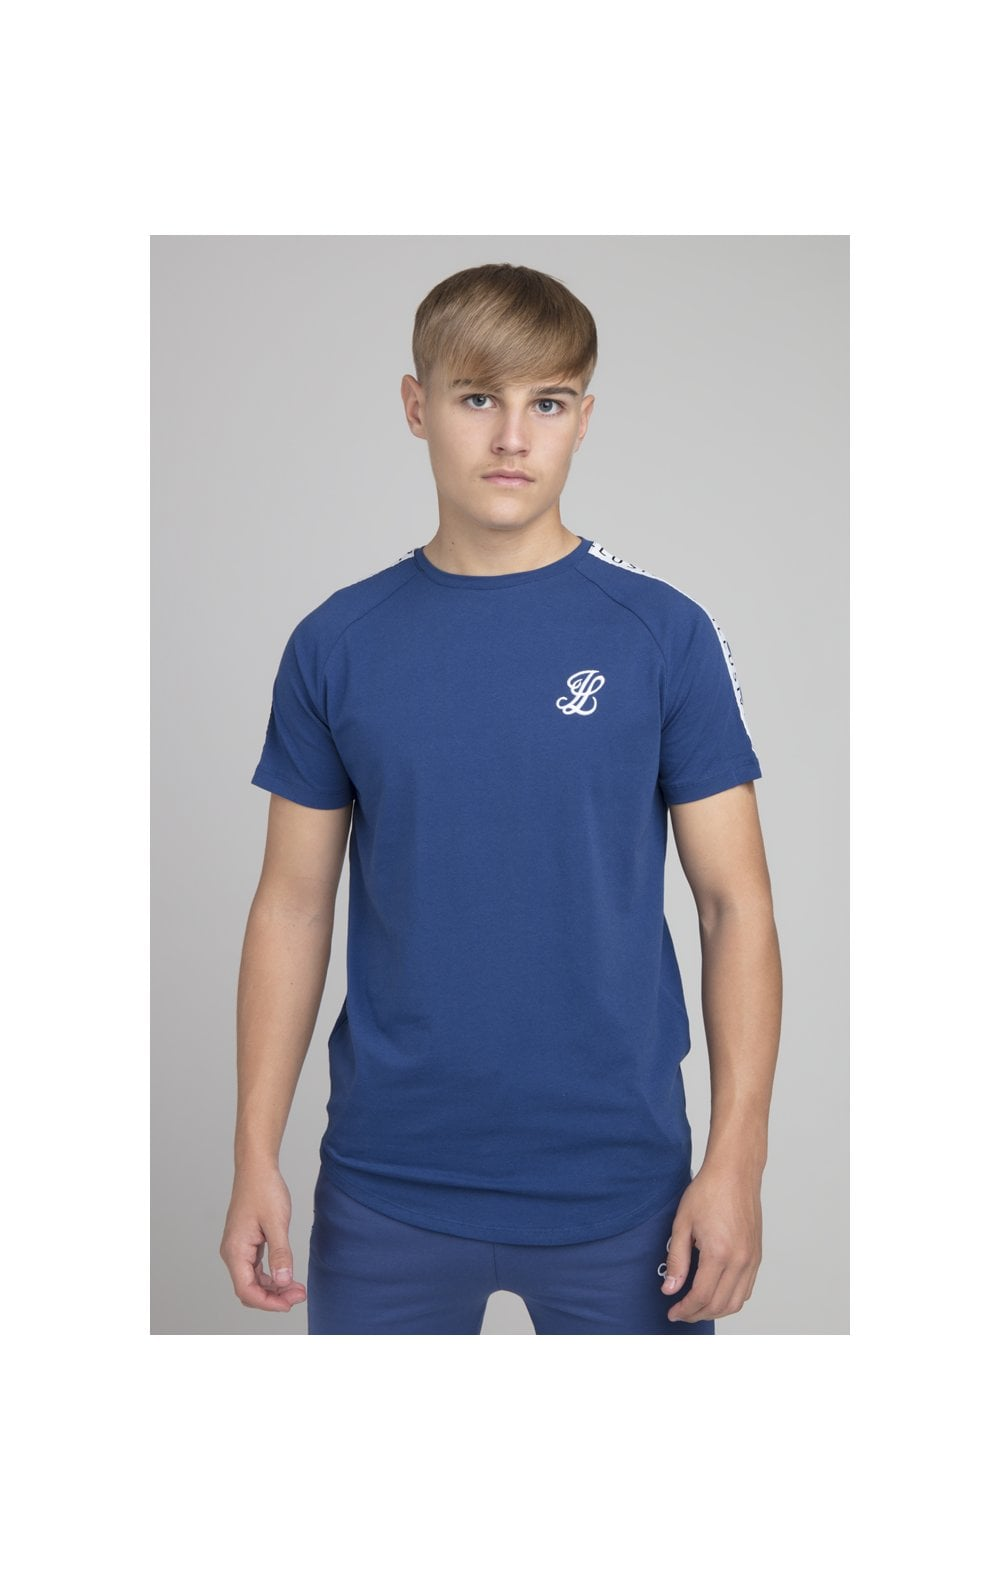 Illusive London Taped Core Tee - Royal Blue Kids Top Sizes: 7-8 YRS